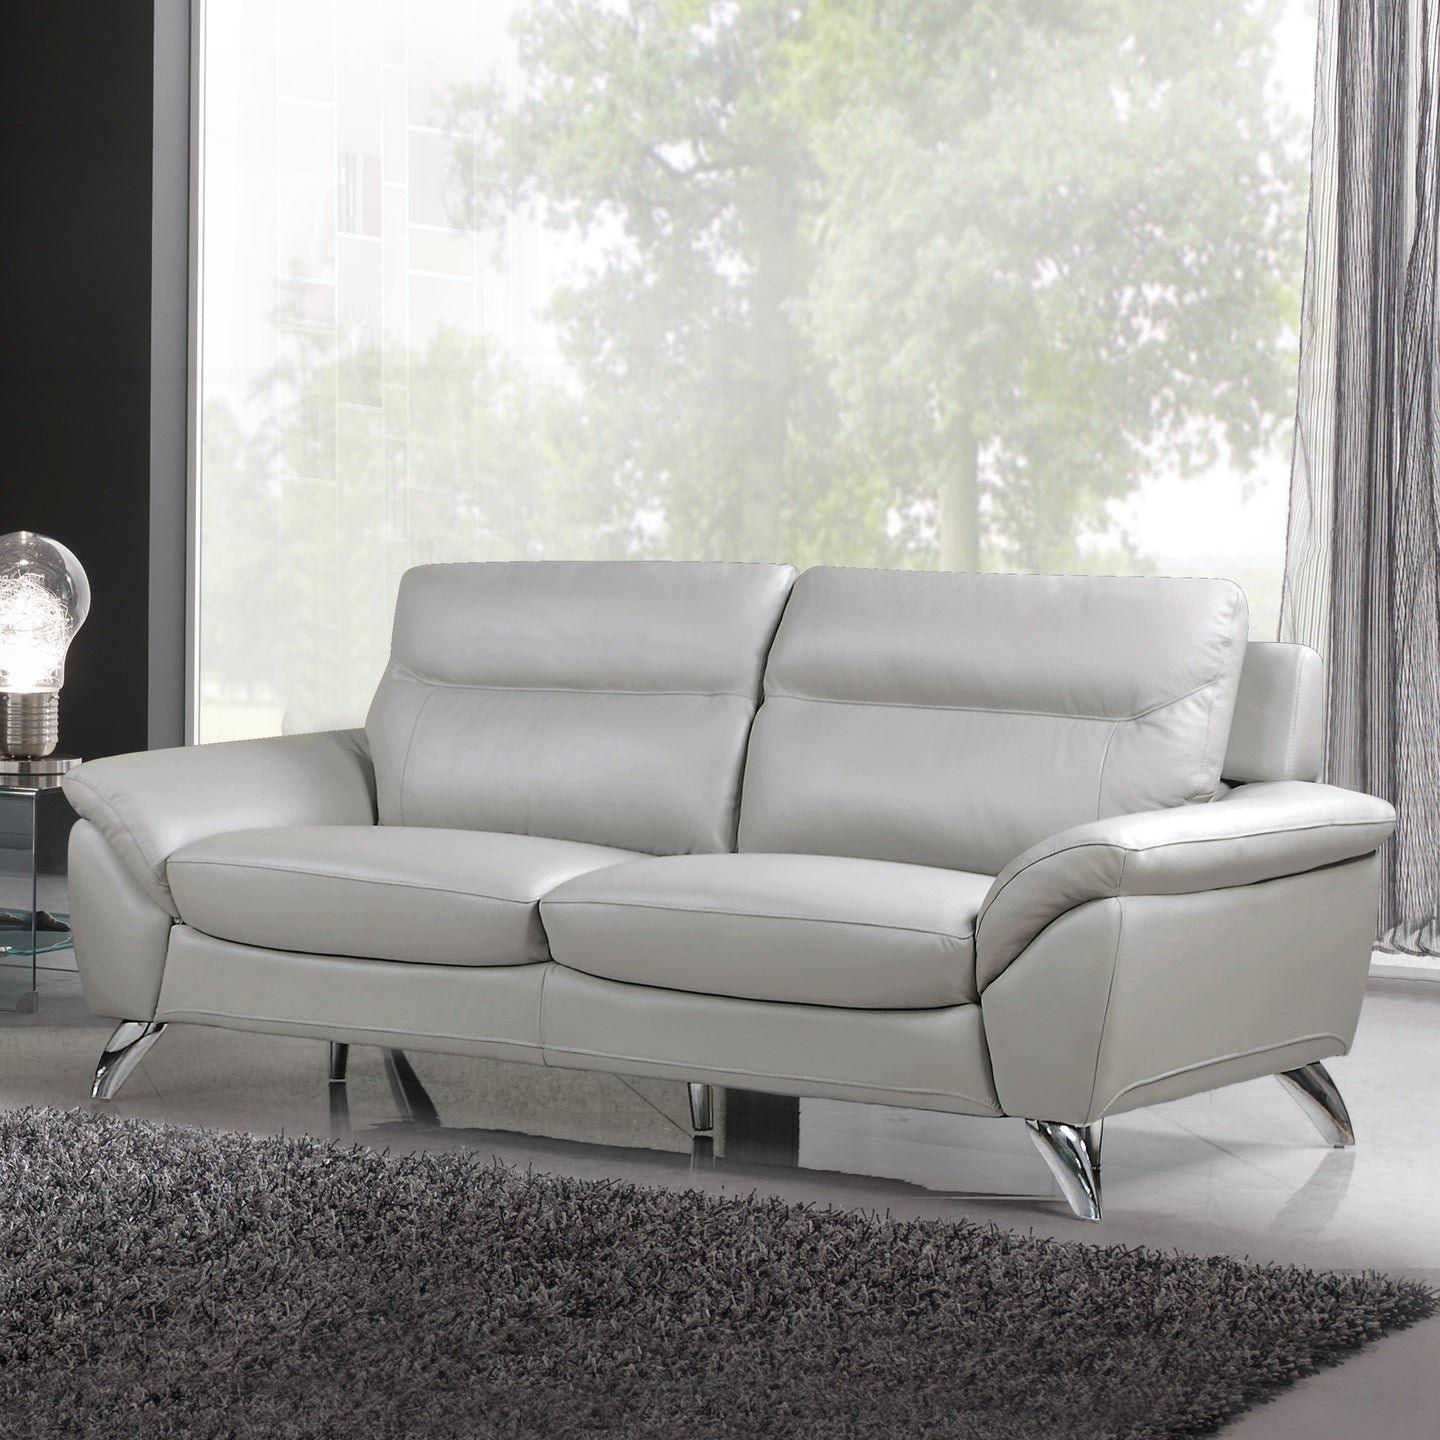 Cortesi Home Contemporary Monaco Genuine Leather Sofa, Light Grey 78